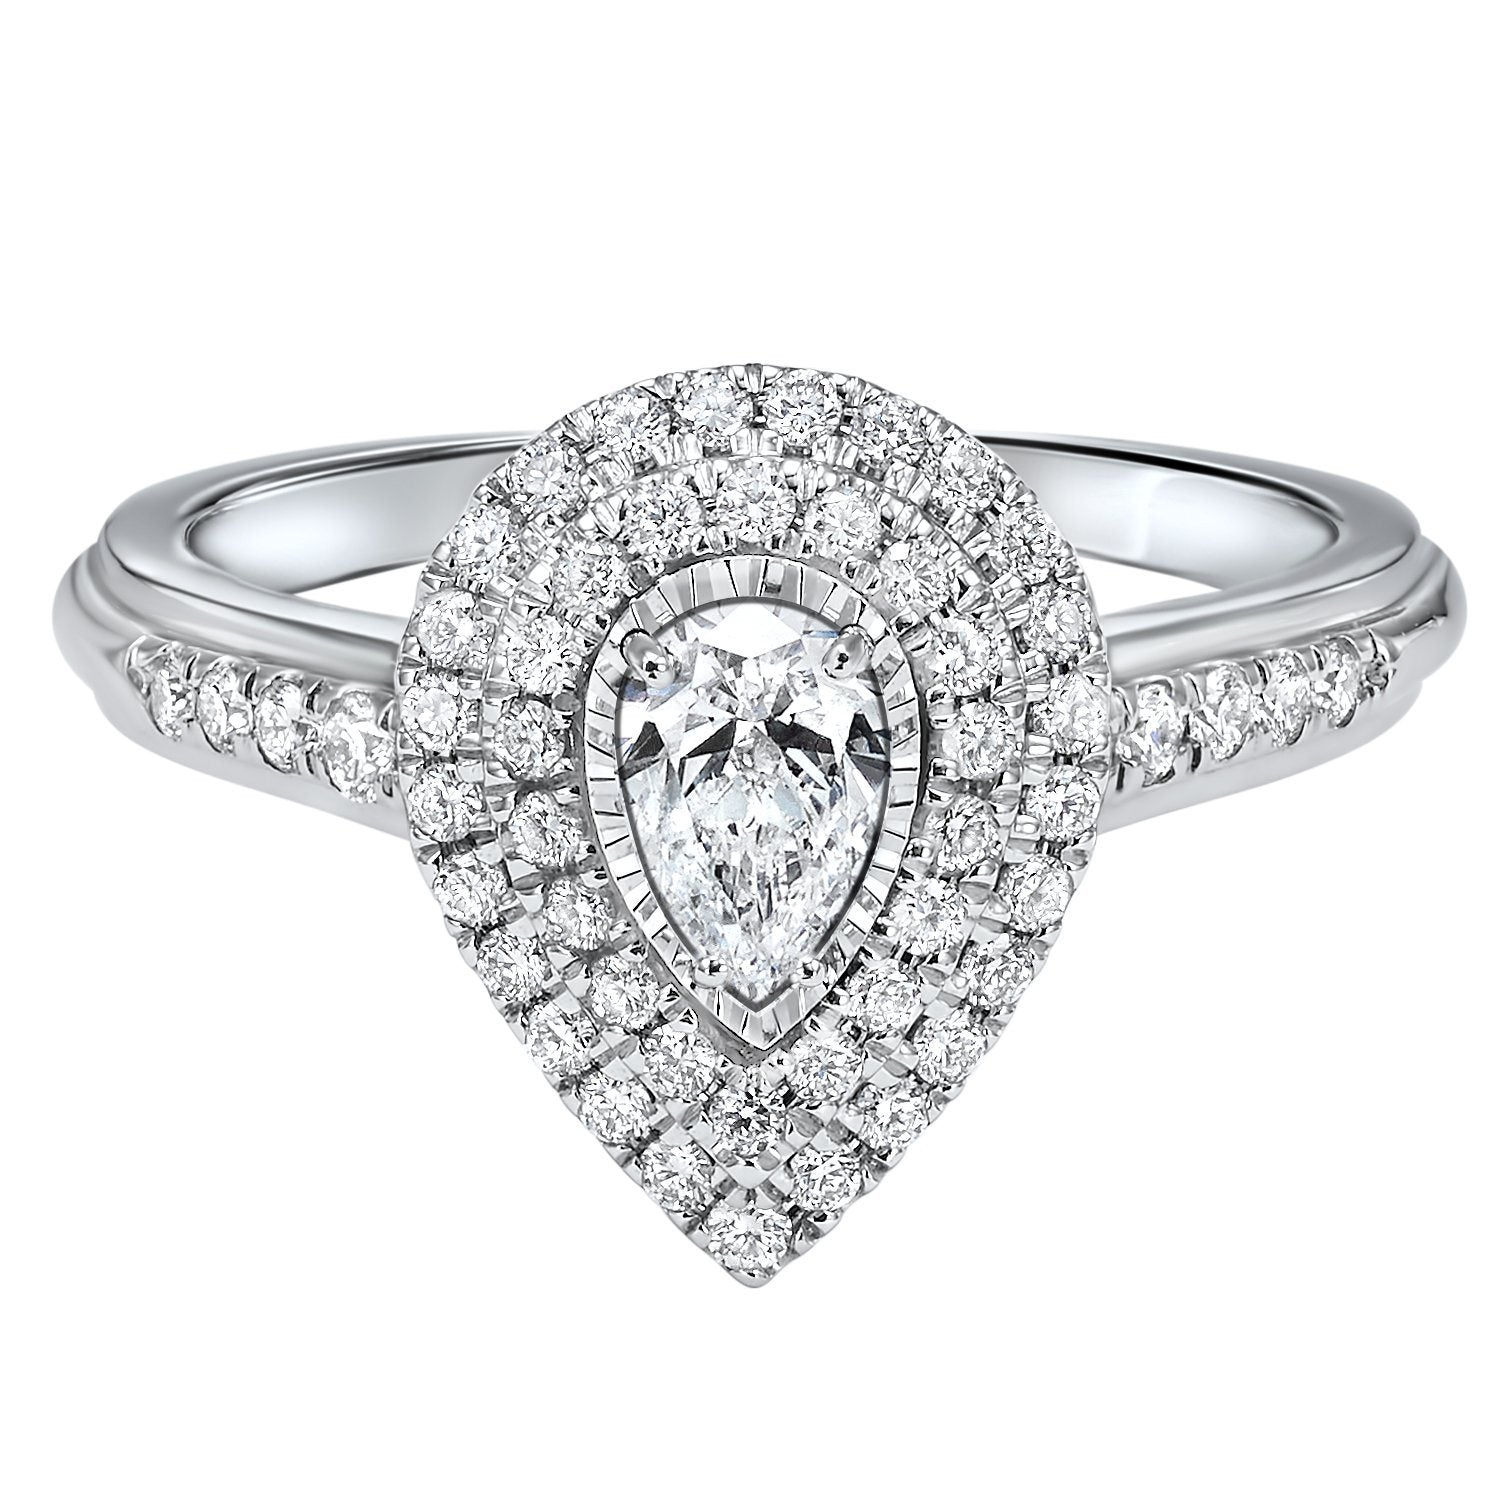 7f4ea019a2b70 14K White Gold 3/4cttw Pear Shaped True Reflections Double Halo Engagement  Ring